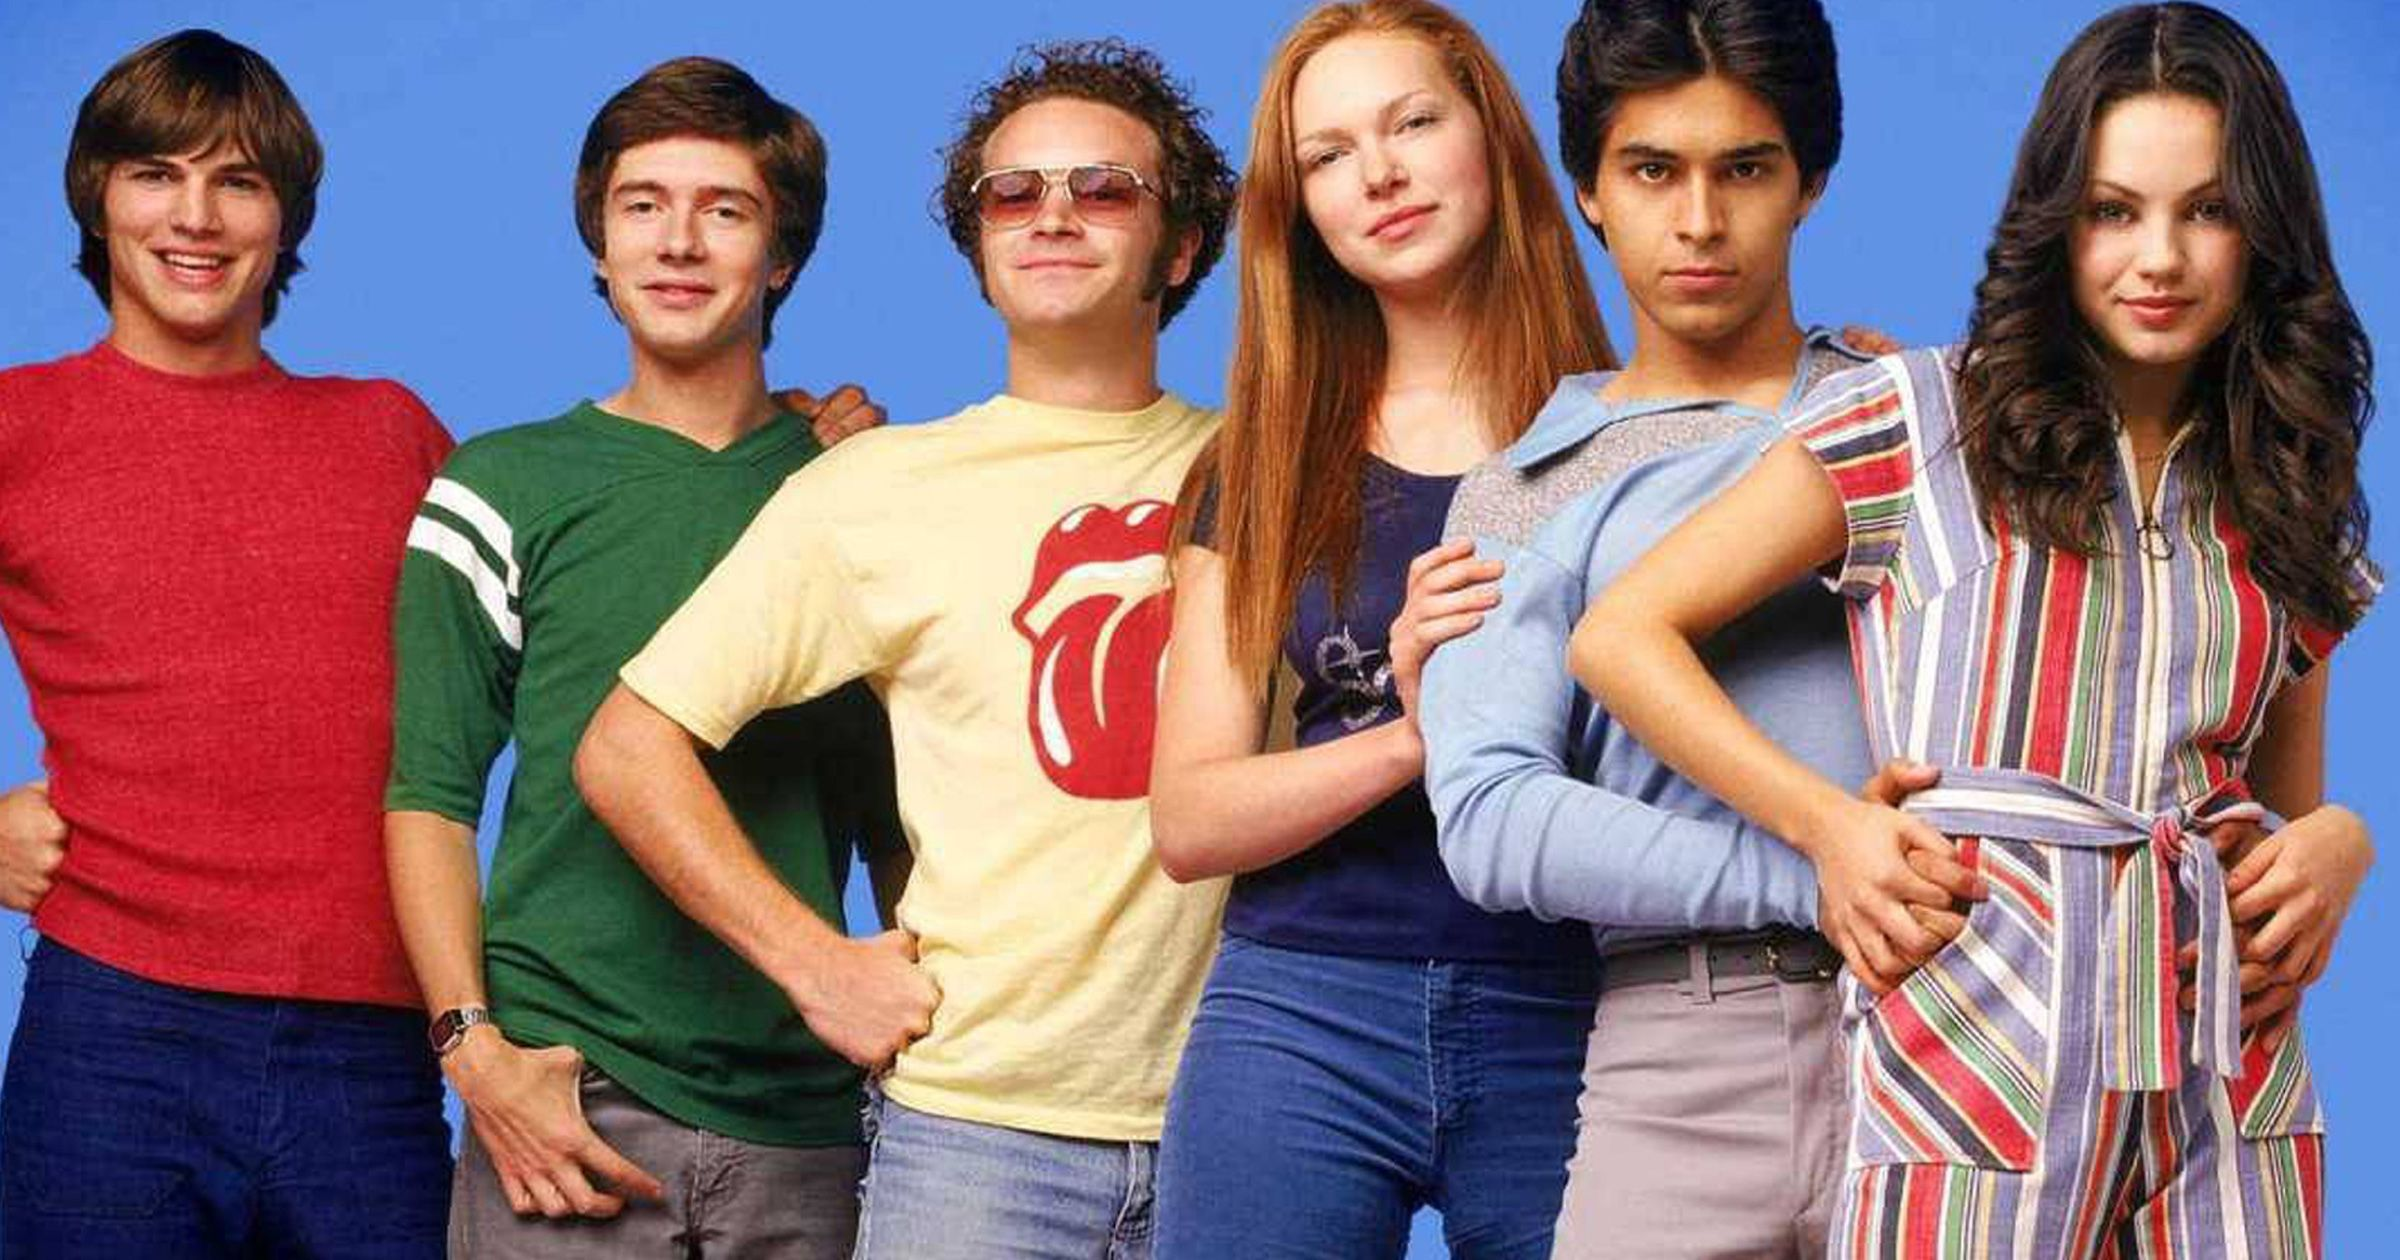 That 70s Show Cast Now: What Are They up to Today?